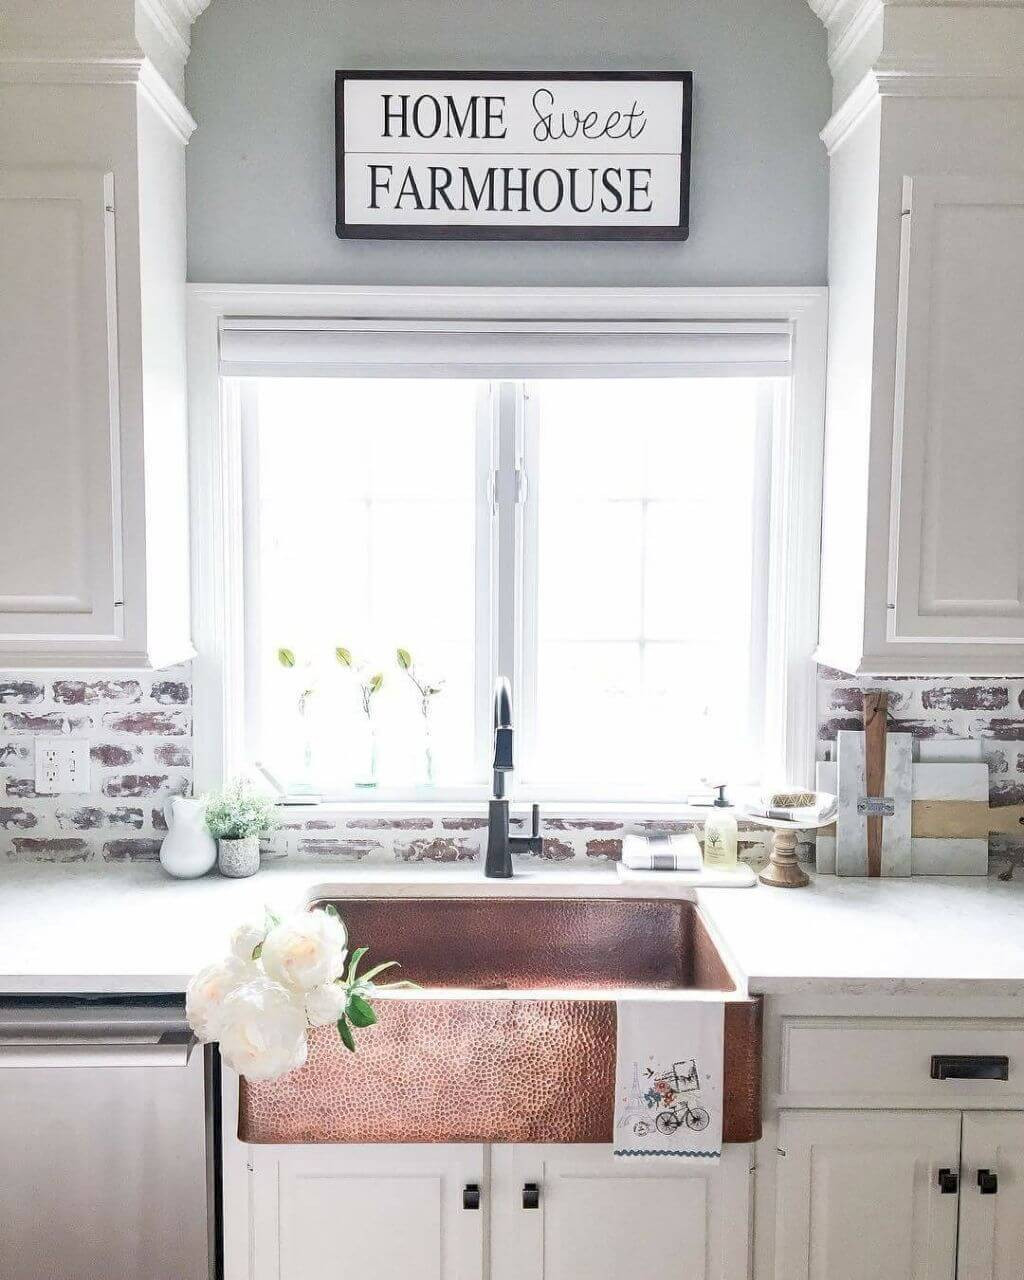 Kitchen Backsplash Design 8 Best Farmhouse Kitchen Backsplash Ideas and Designs for 2019